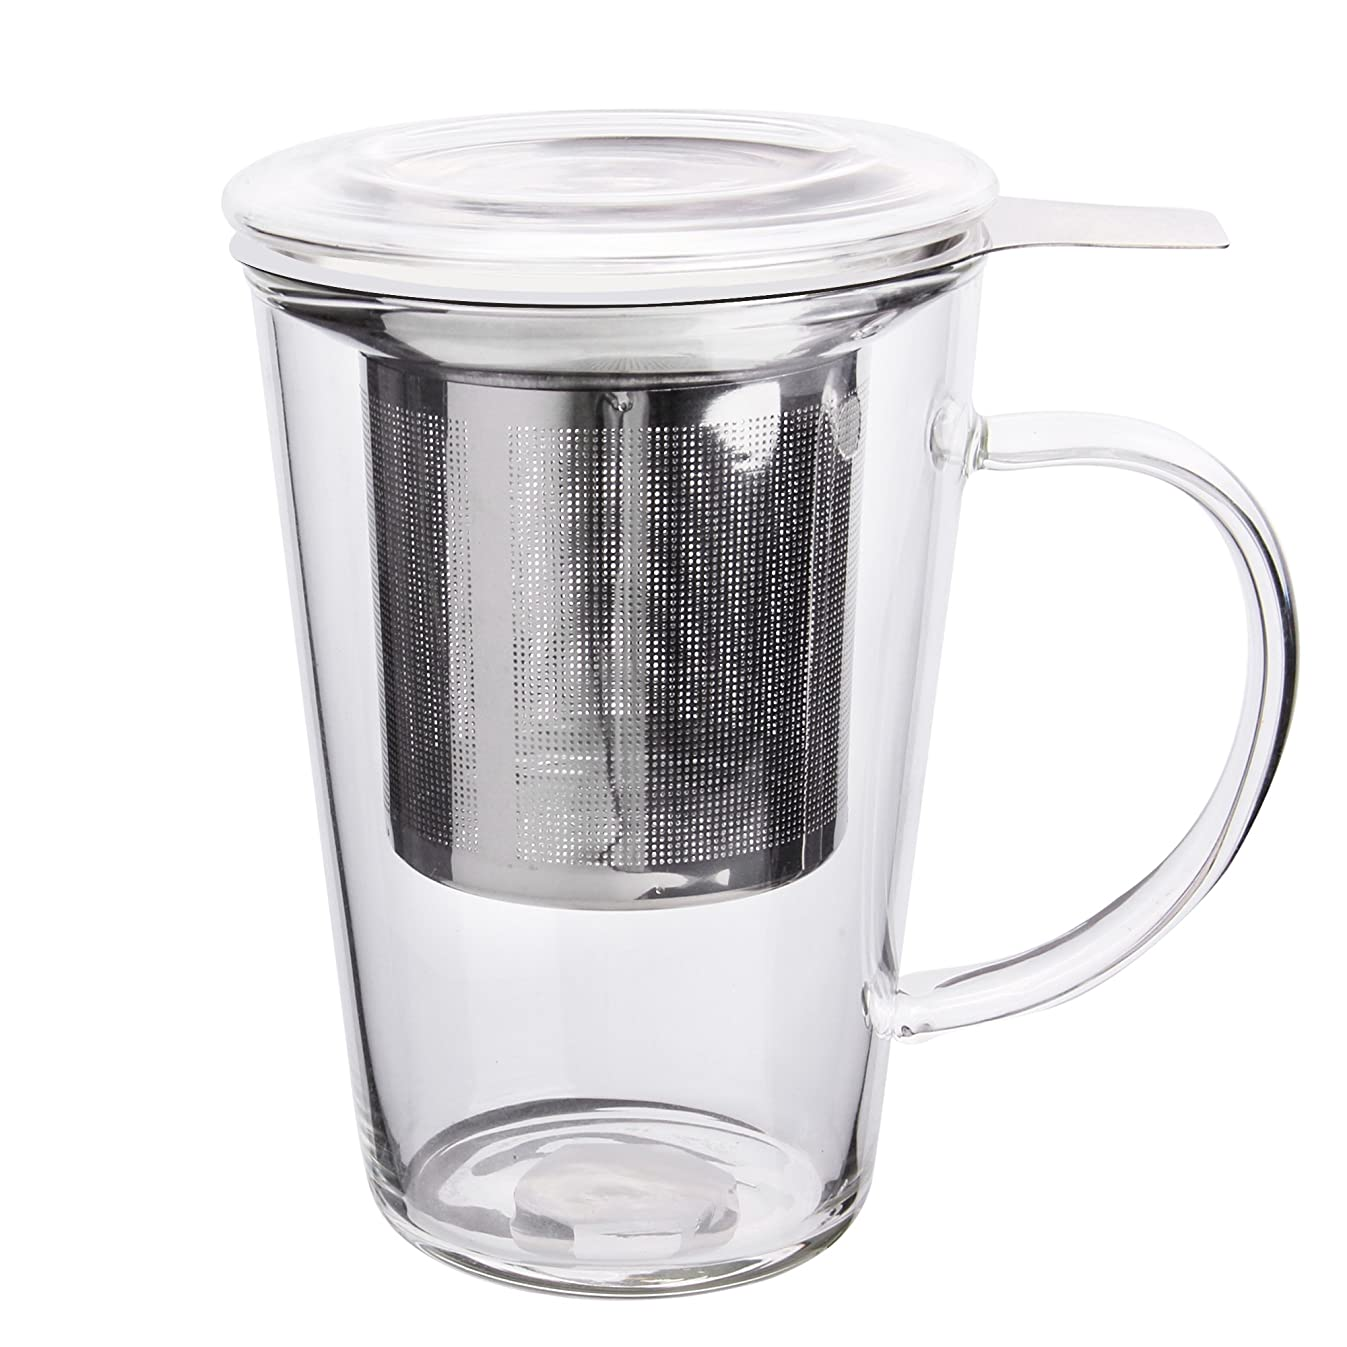 Enindel Fashion Simple Style Tea Mug with Infuser and Lid Glass Tea Cup 14 OZ (Glass set of 1)